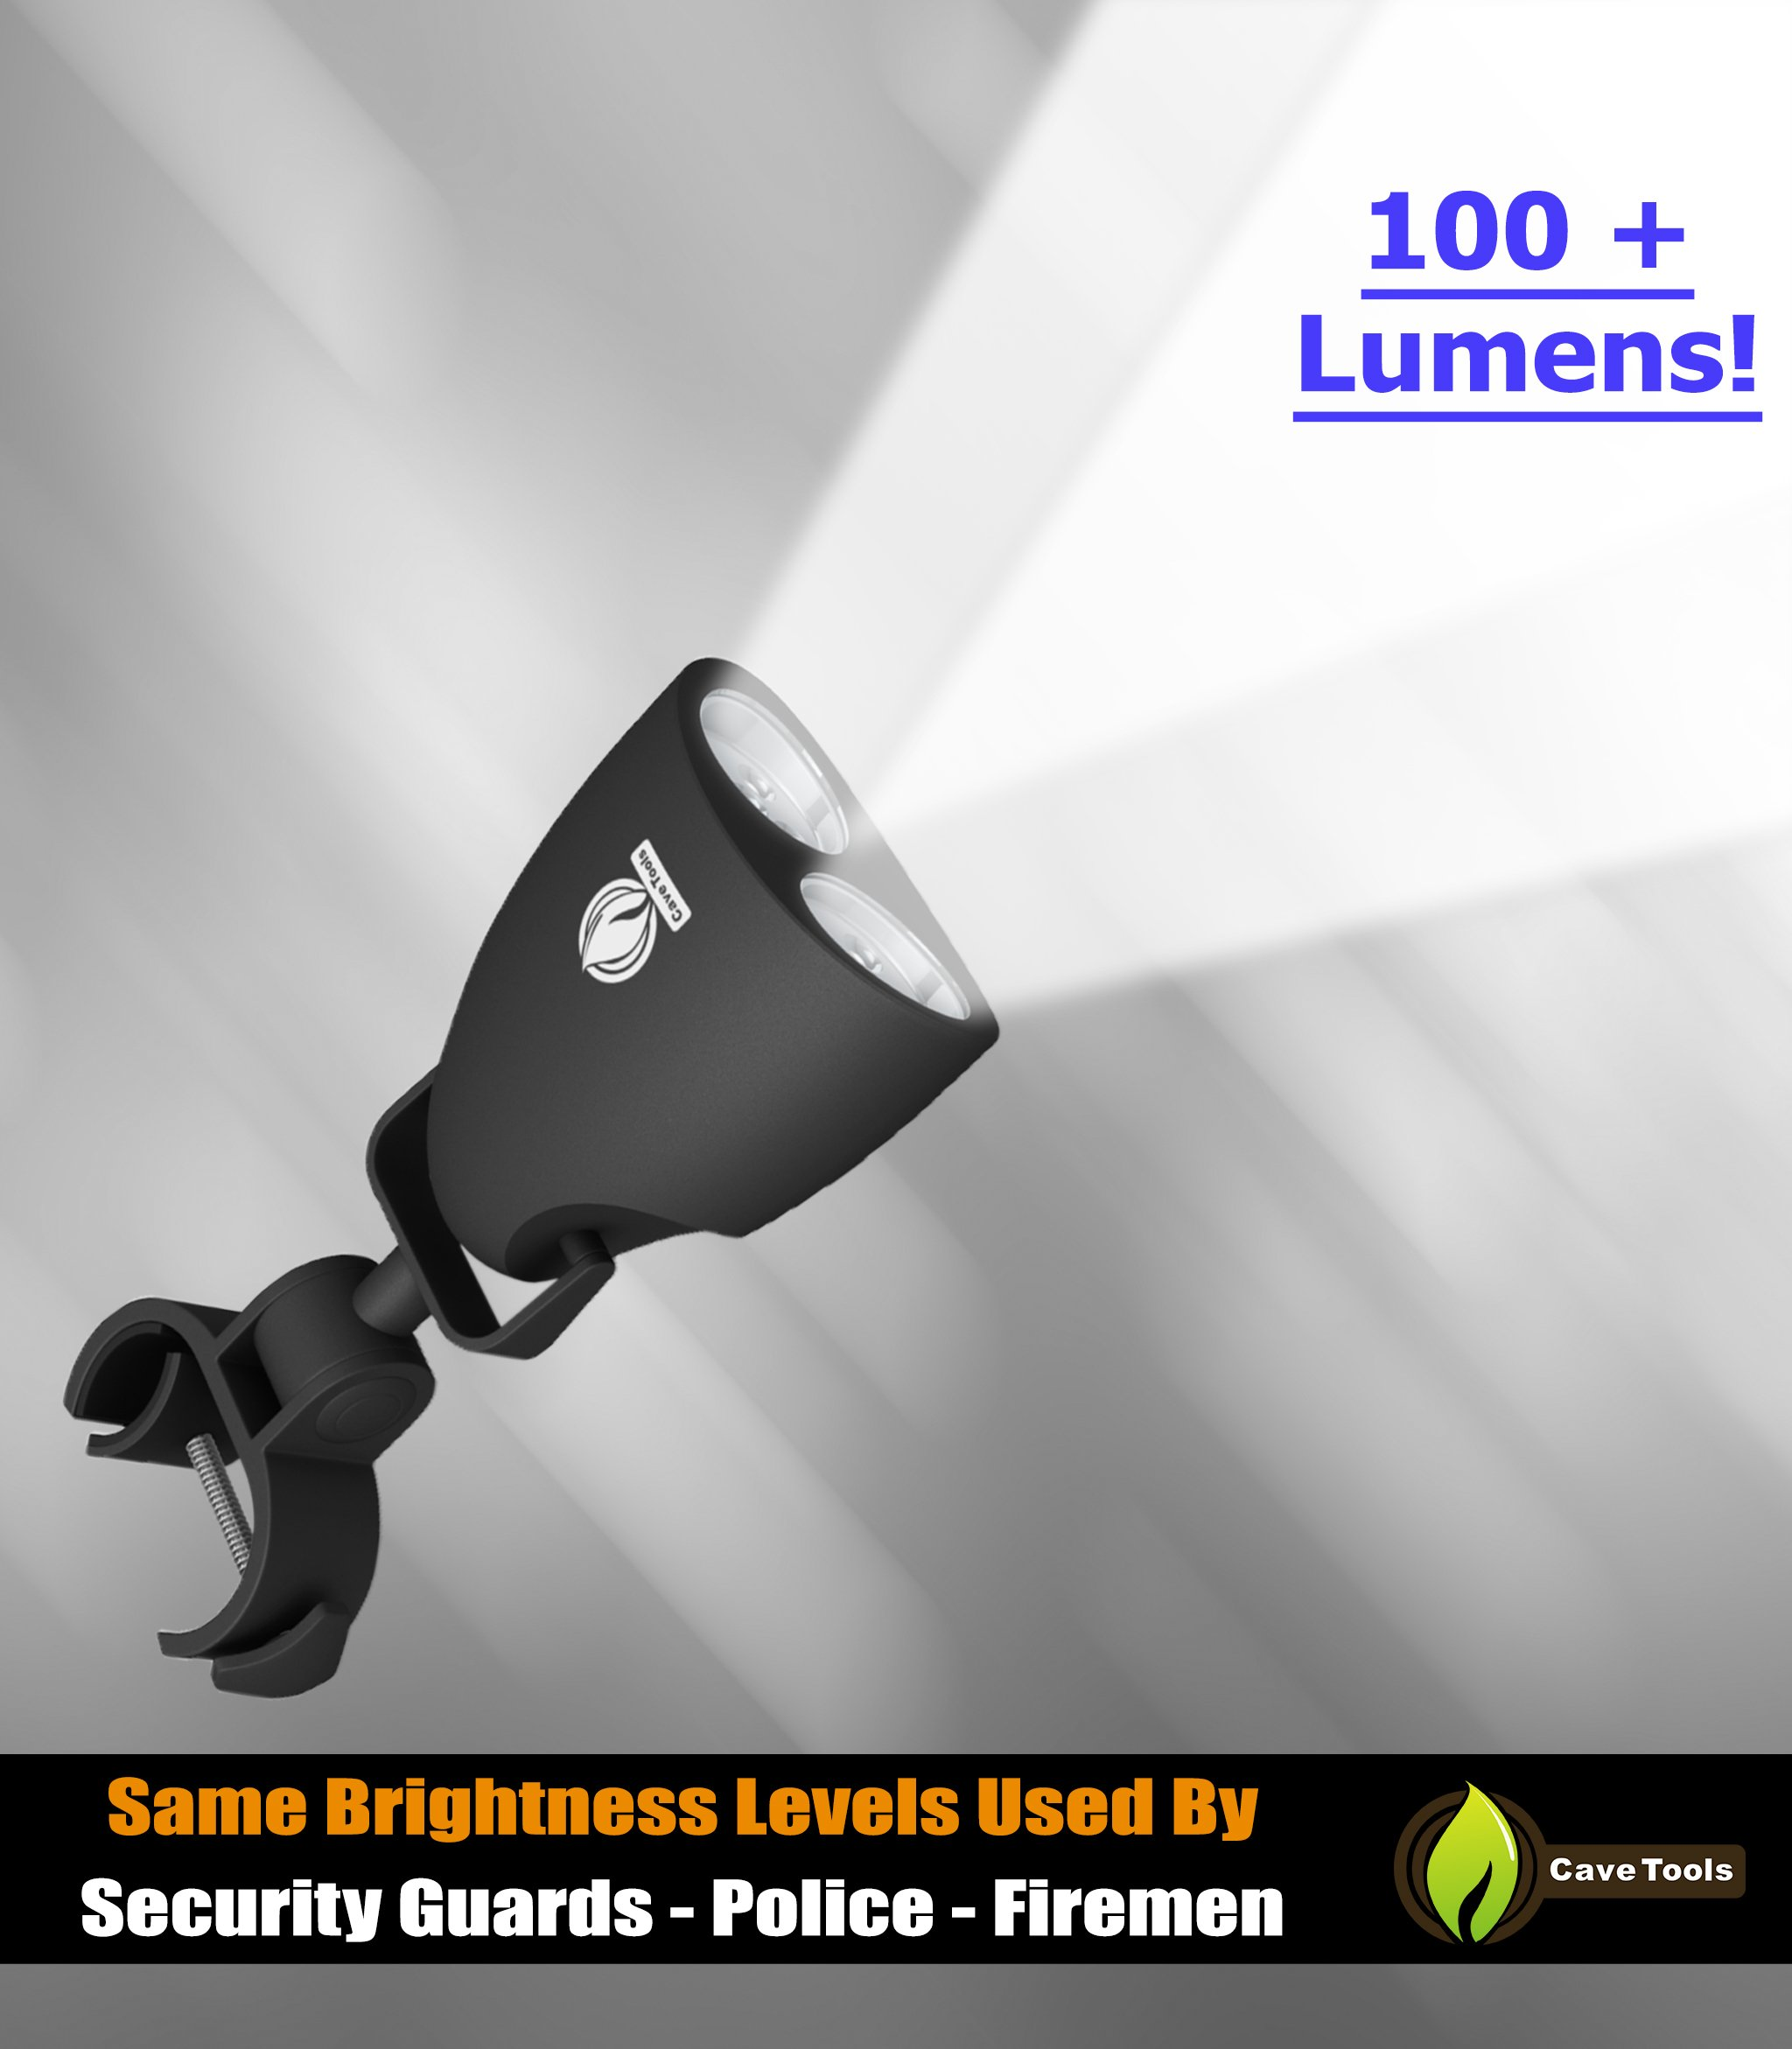 Cave Tools Barbecue Grill Light - Luxurious Gift Box - Upgraded Handle Mount Fits Round & Square Bars on Any BBQ Pit - 10 LED for Grilling at Night - Best Lighting Accessories by Cave Tools (Image #6)